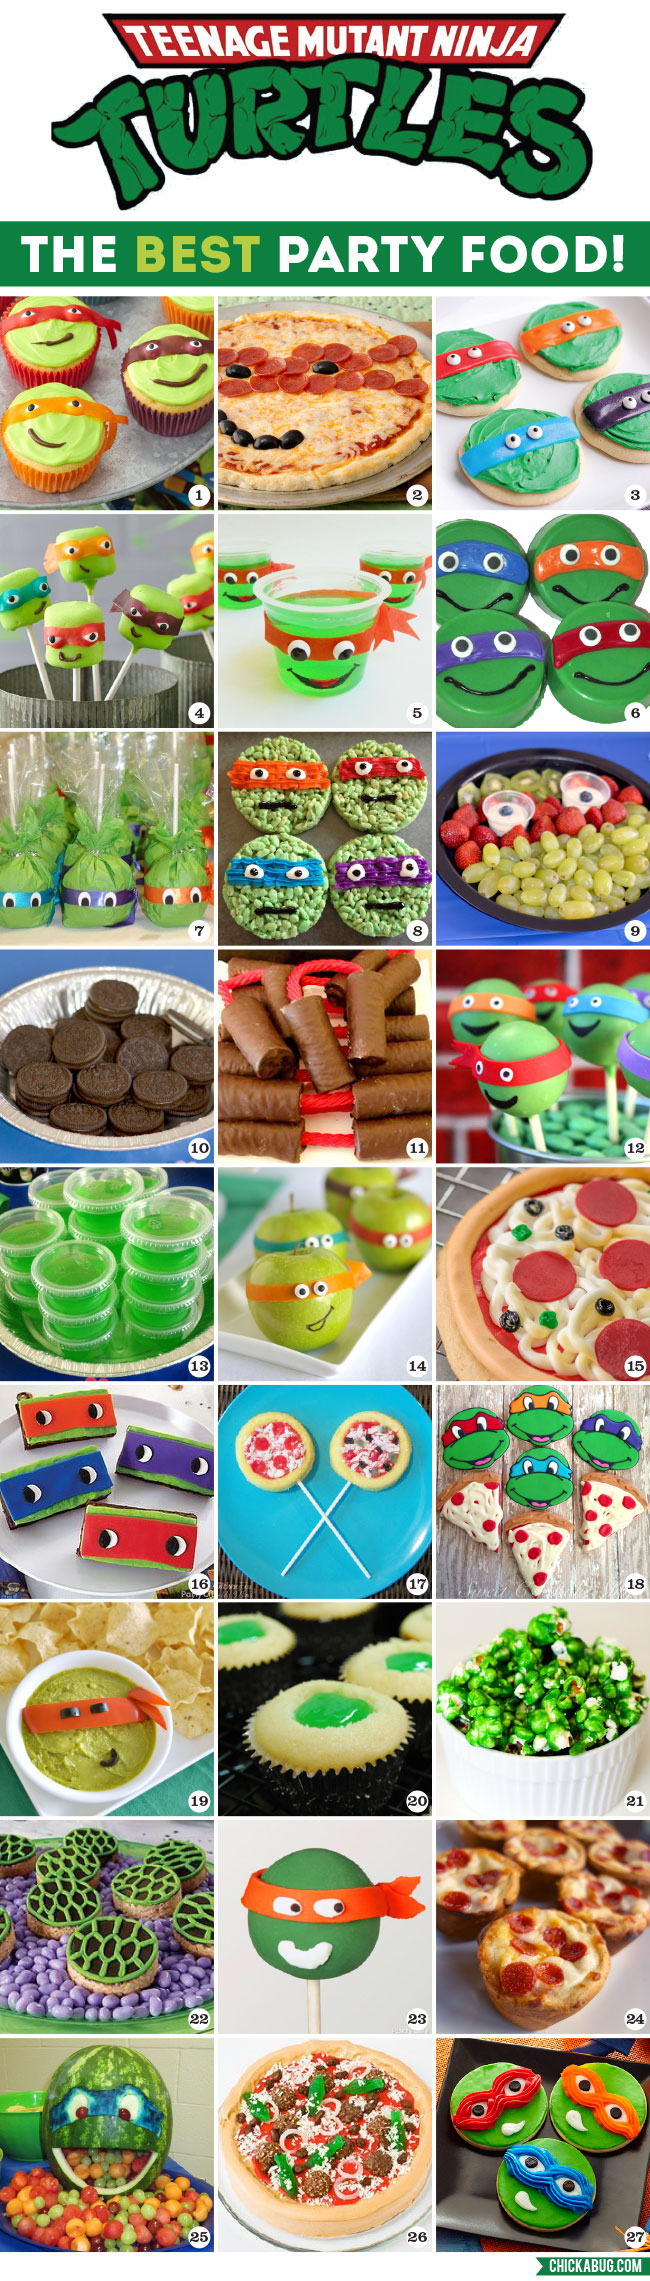 All The BEST Teenage Mutant Ninja Turtles Party Food Ideas Together In One Place